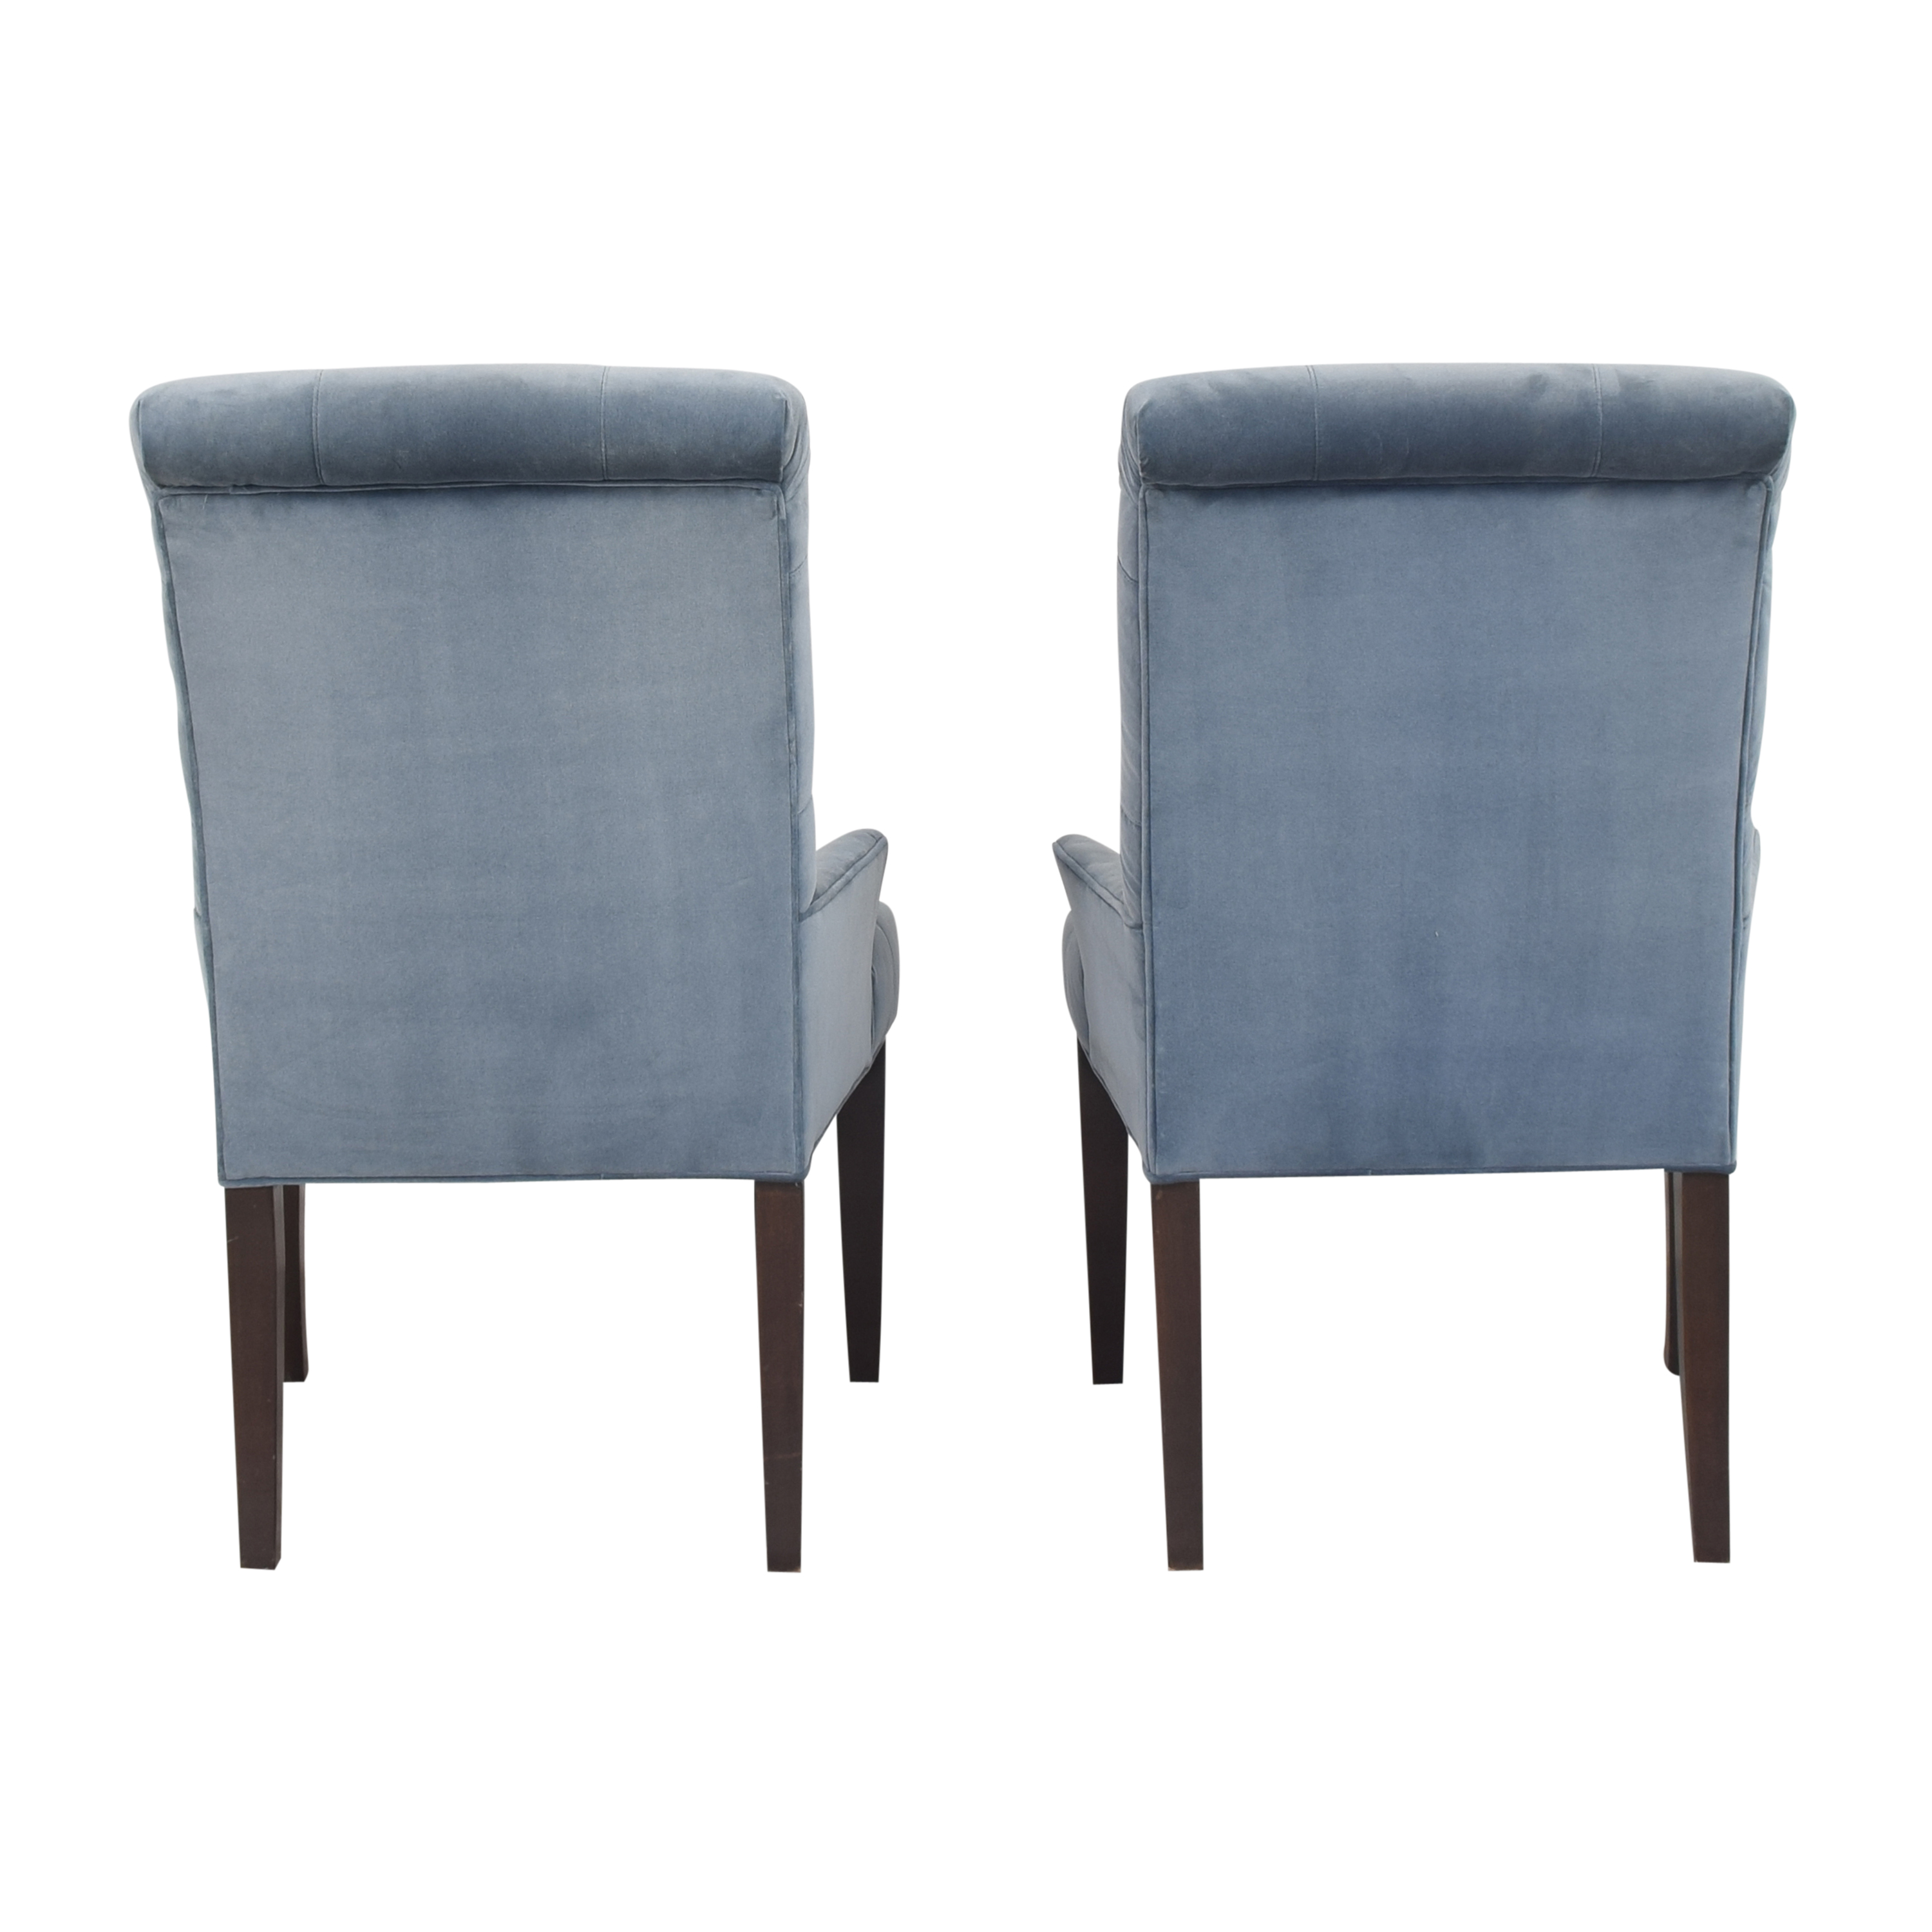 Ethan Allen Ethan Allen Verlaine Dining Chairs pa